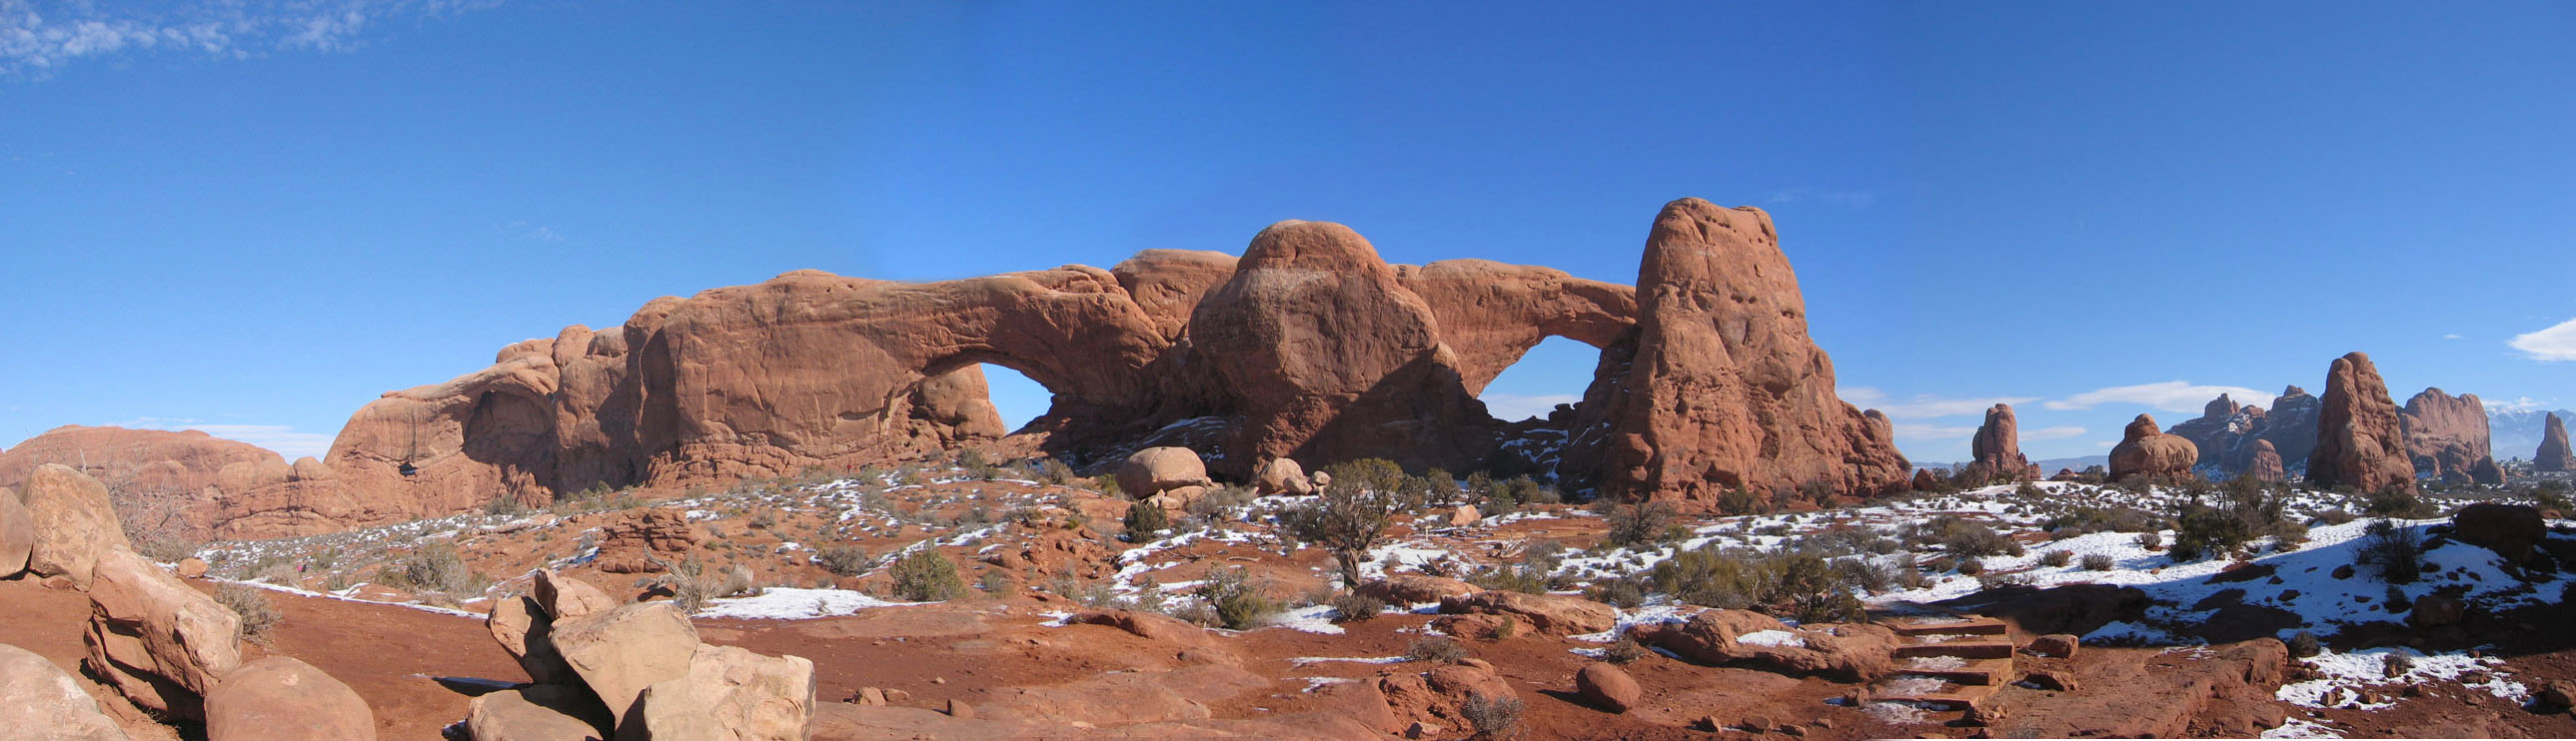 Gallery - Arches National Park